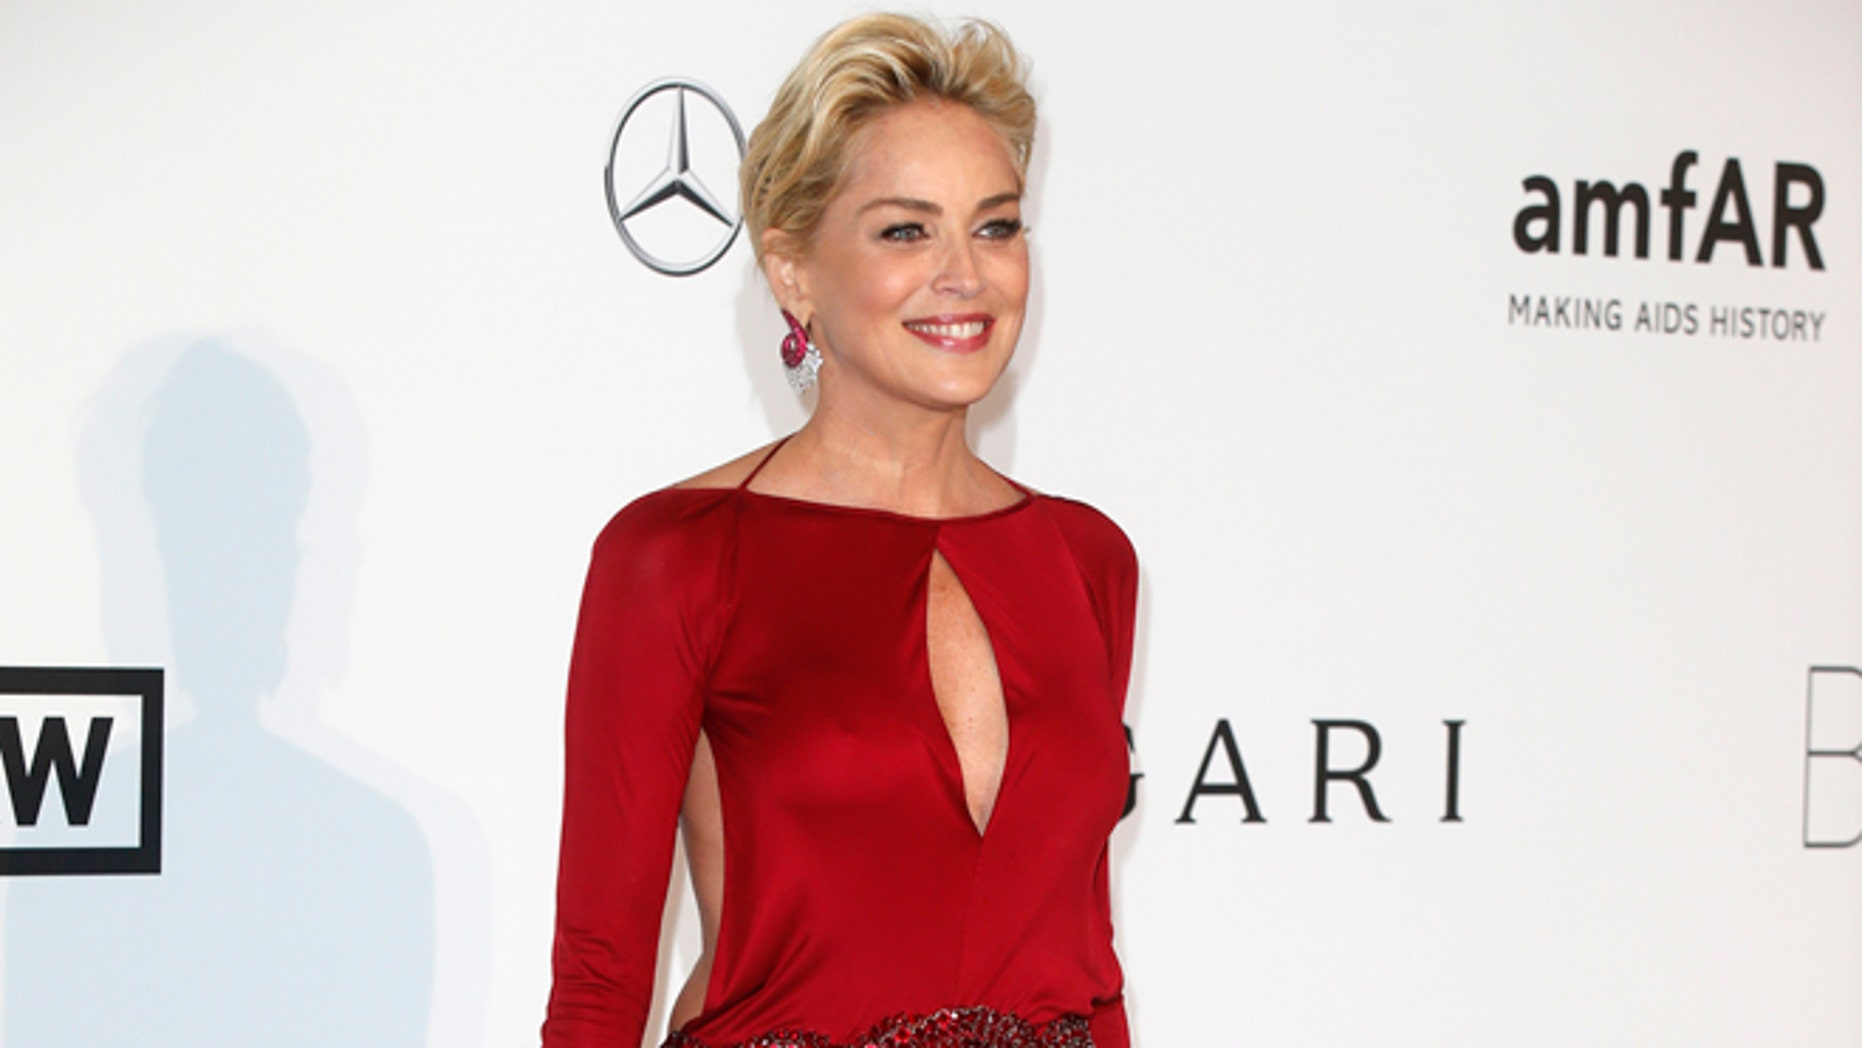 Sharon Stone spoke about sexual assault on college campuses.